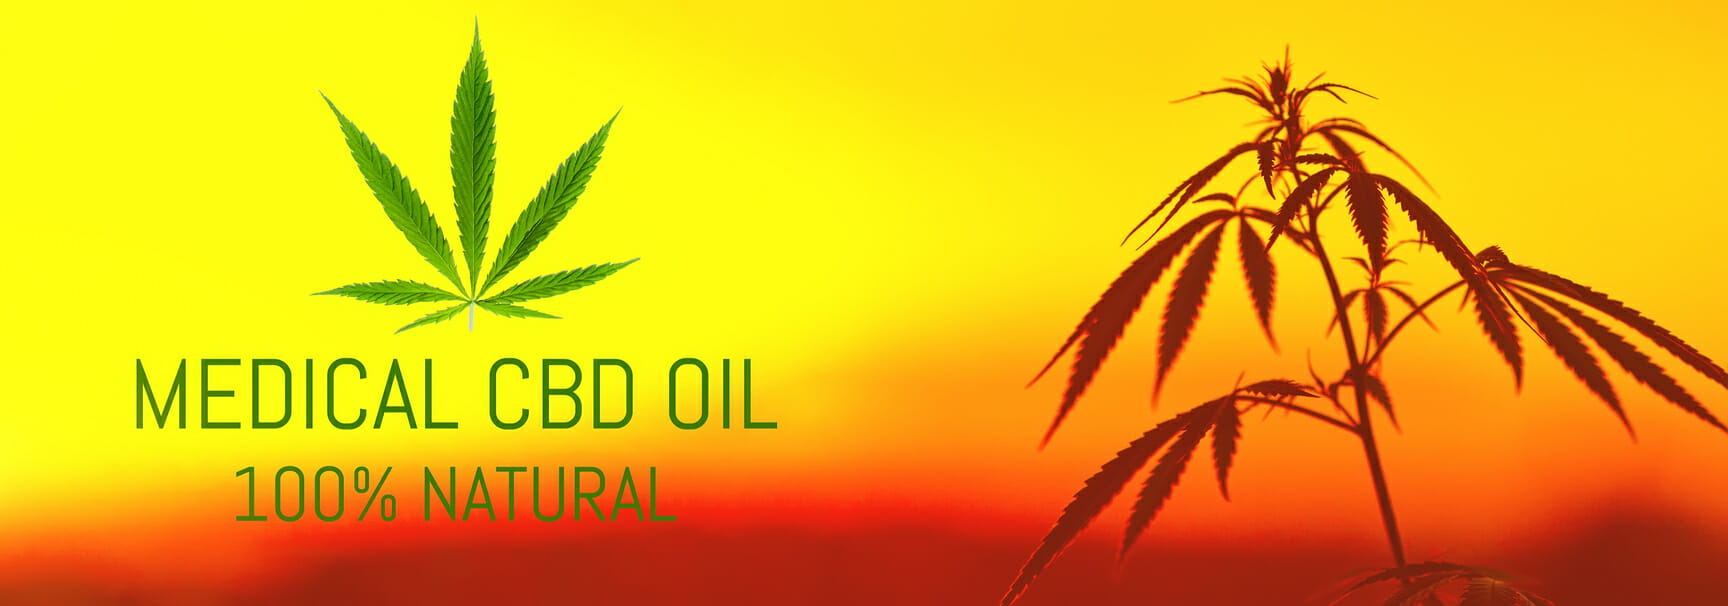 CBD Oil, medical marijuana, cannabis